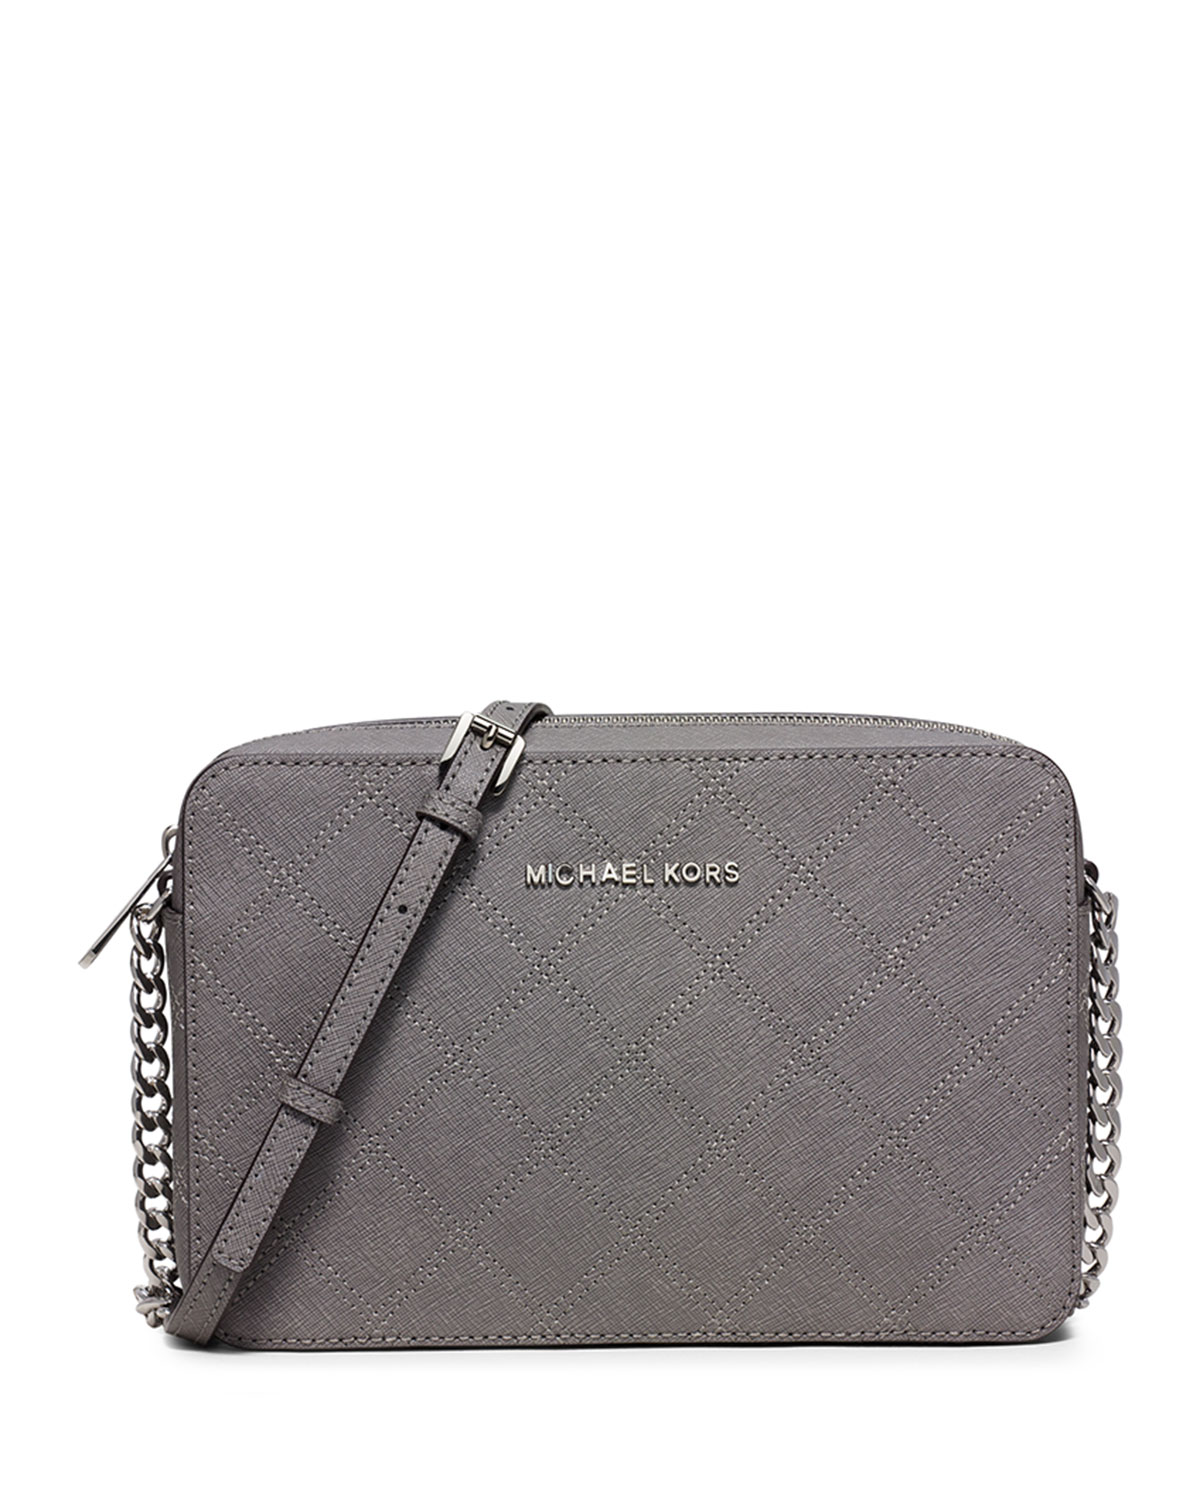 05f5ece96097a4 MICHAEL Michael Kors Jet Set Travel Large East-West Quilted Crossbody Bag,  Steel Gray